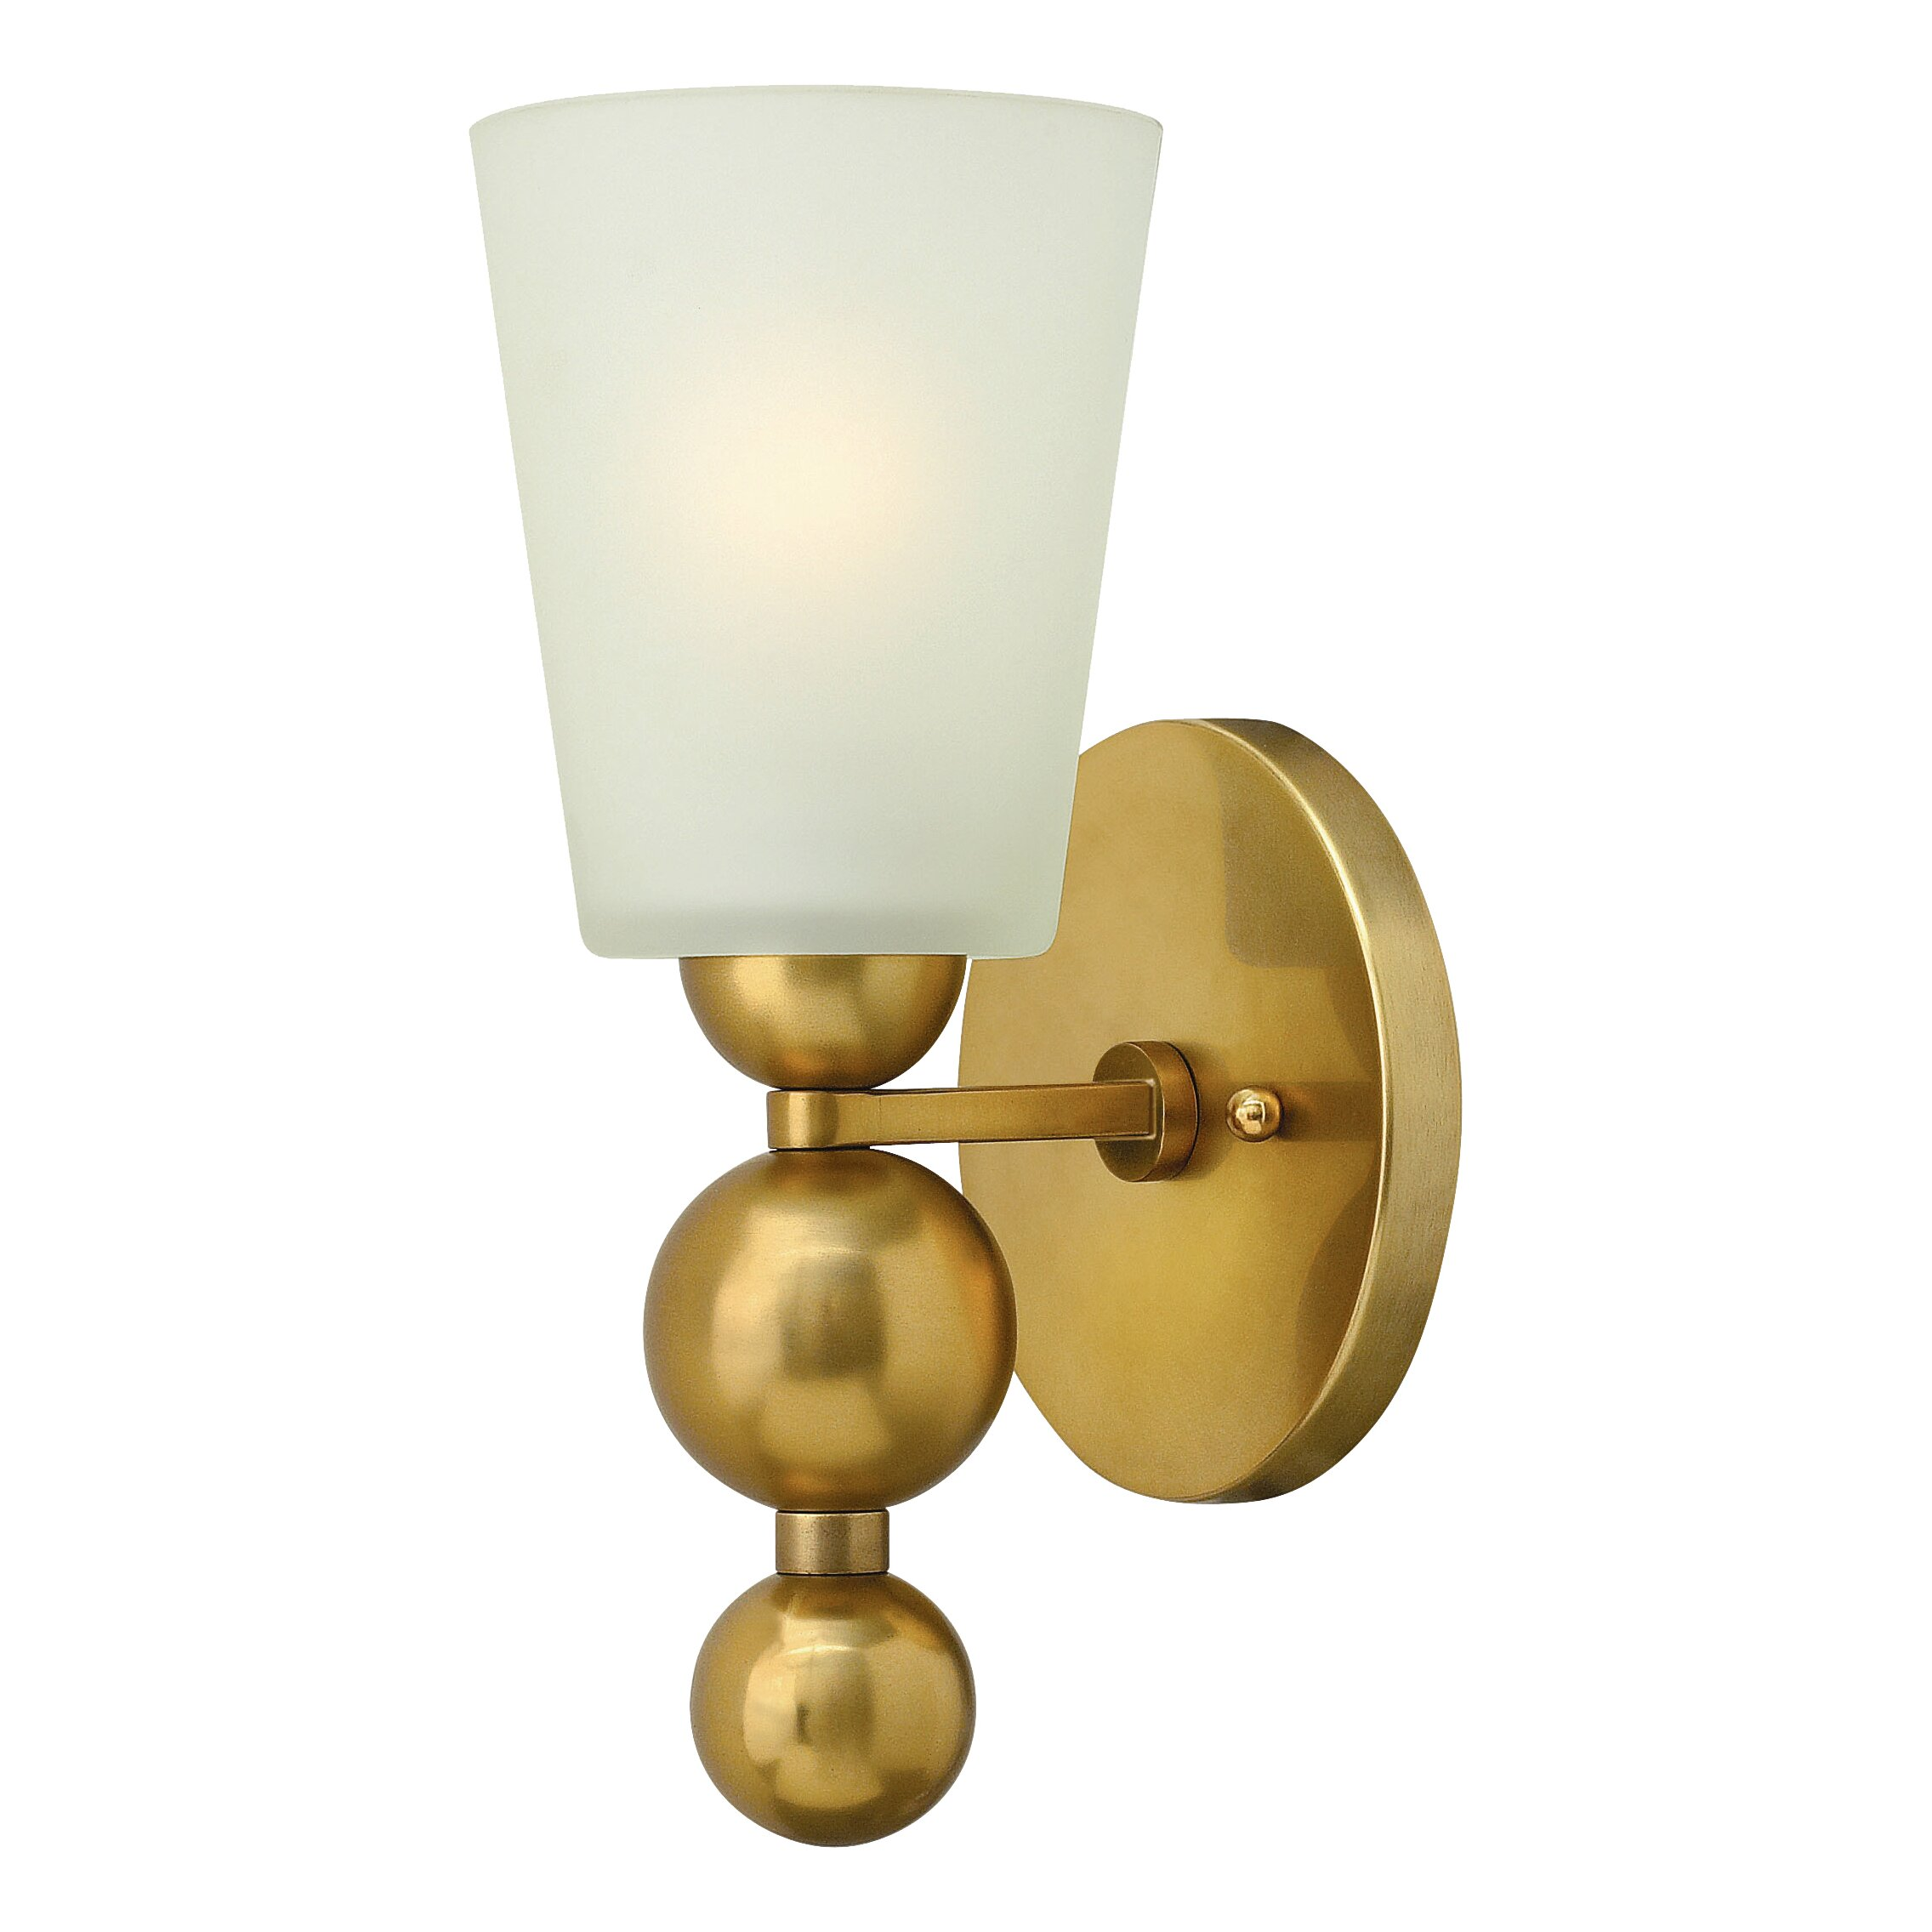 Wall Sconce With Magnifying Glass : Mercer41 Goulet 1 Light Wall Sconce & Reviews Wayfair